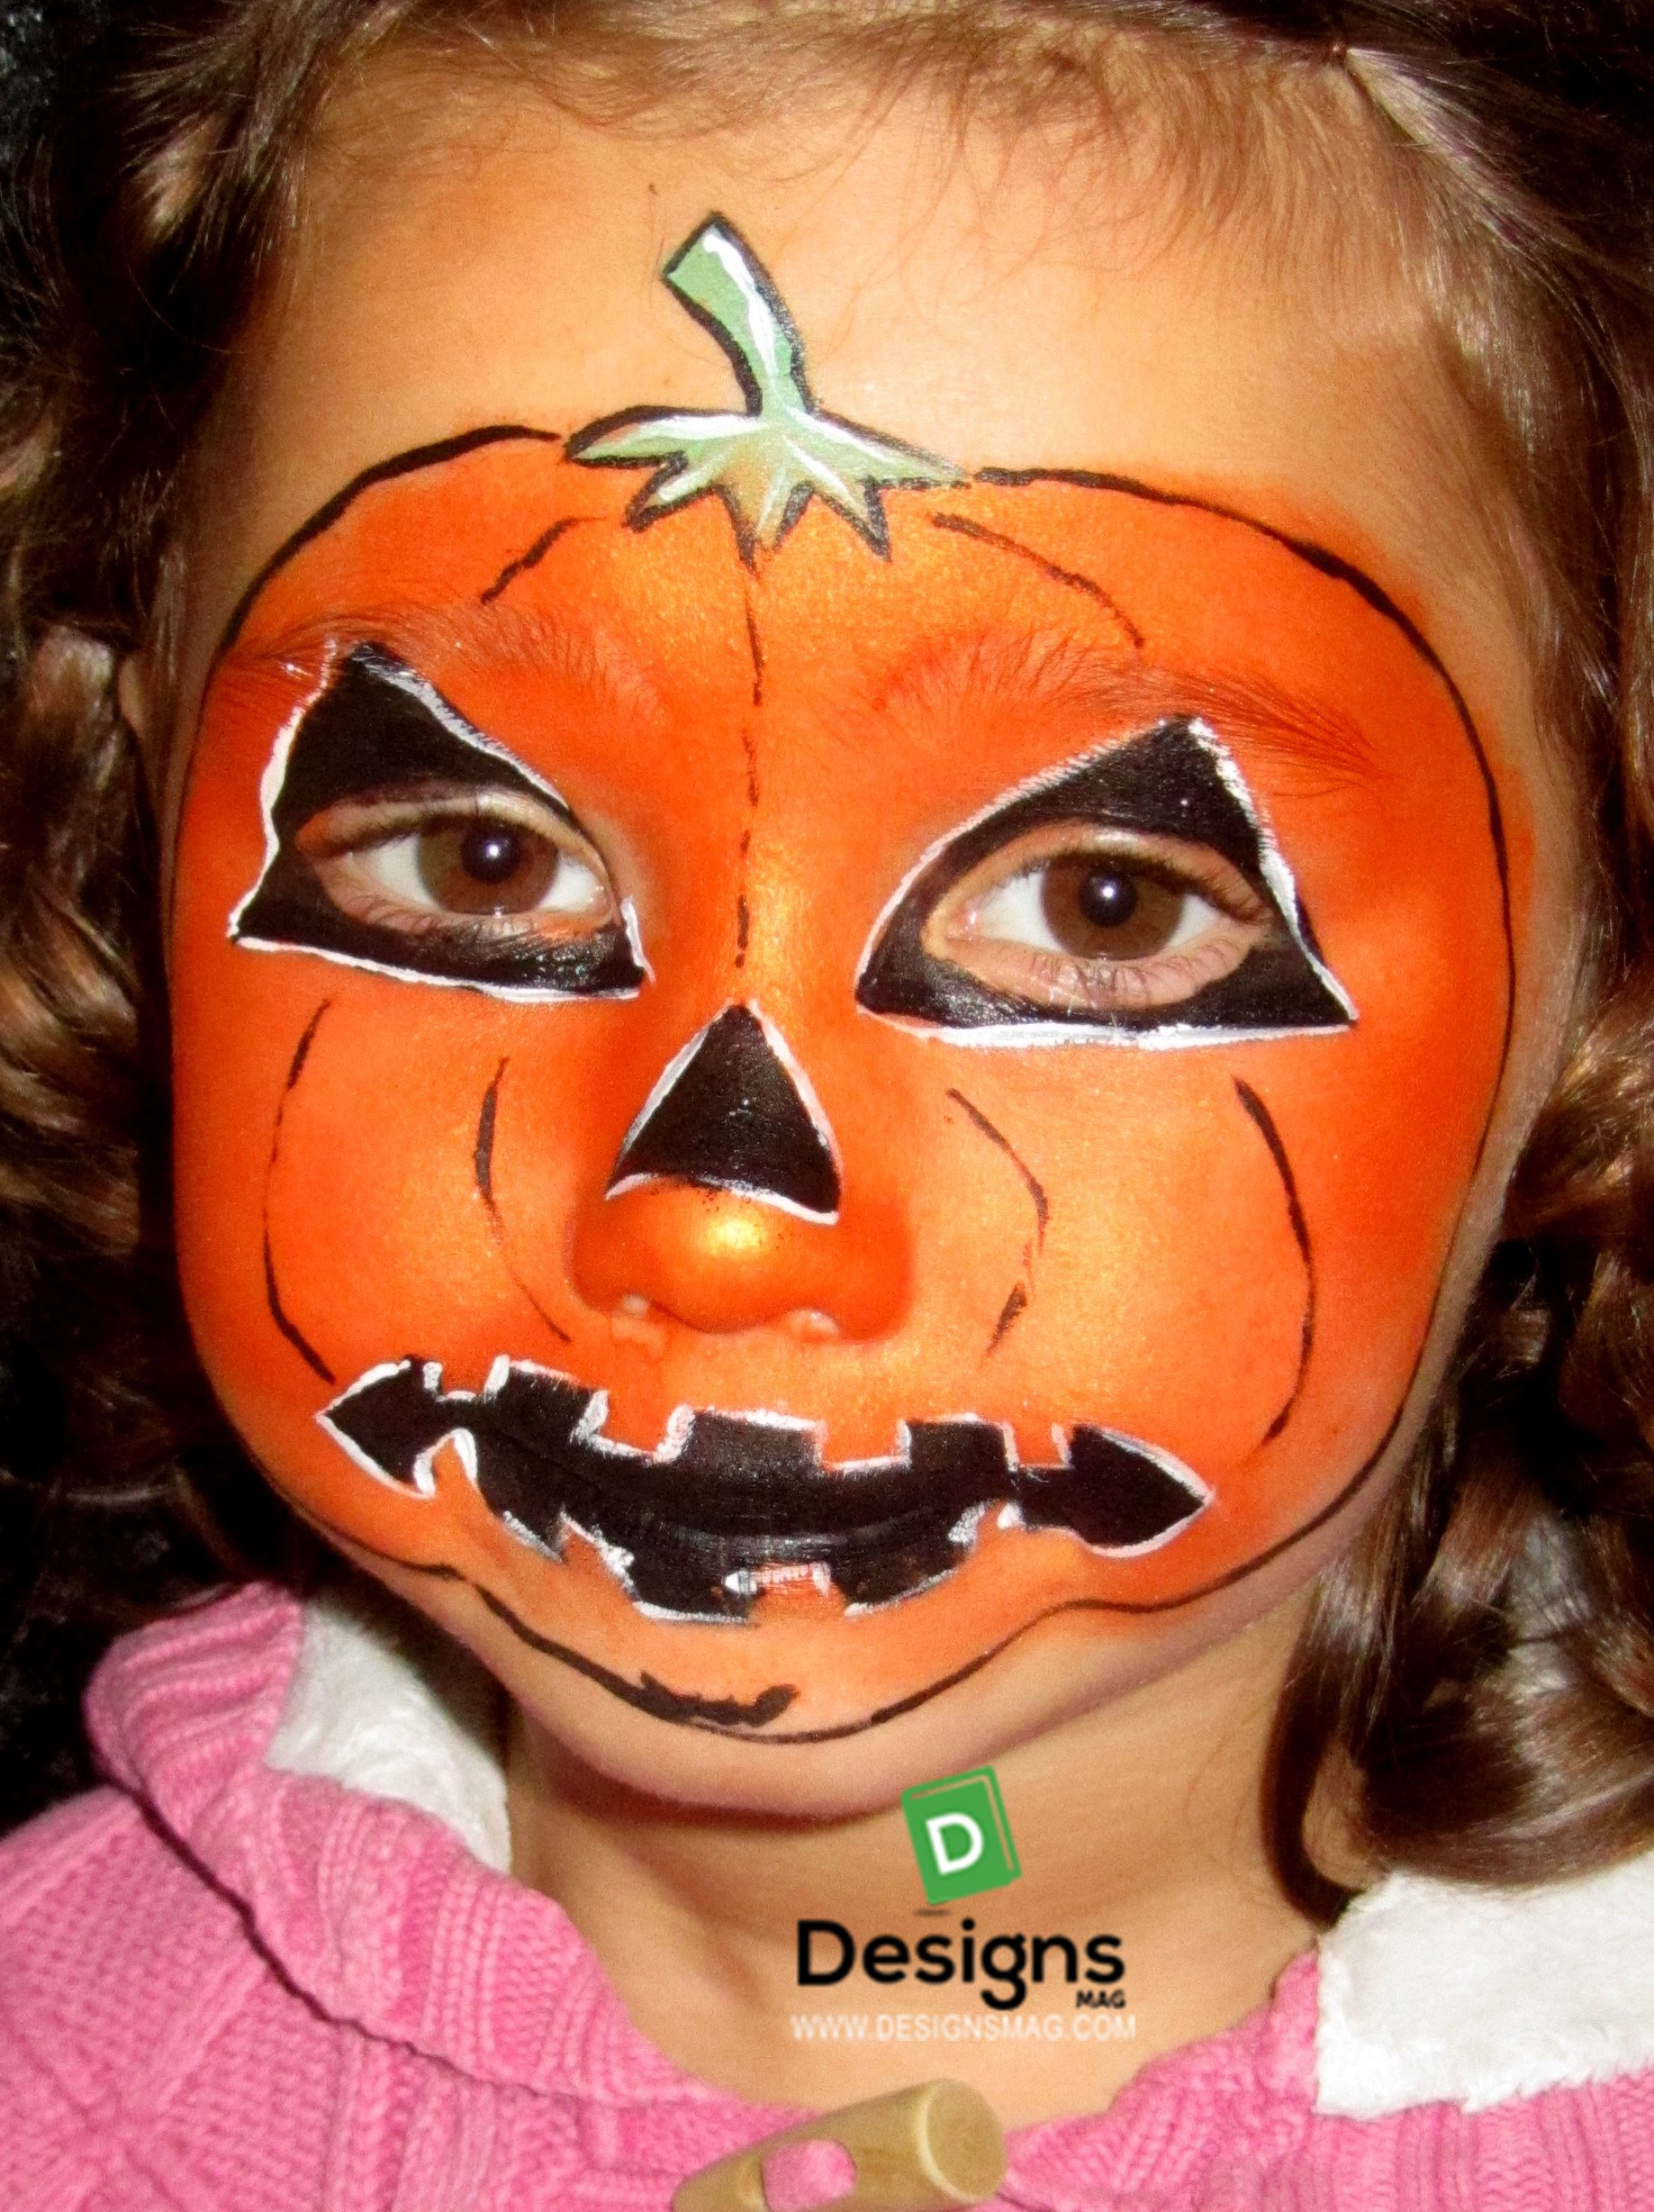 75 easy face painting ideas - face painting makeup - page 2